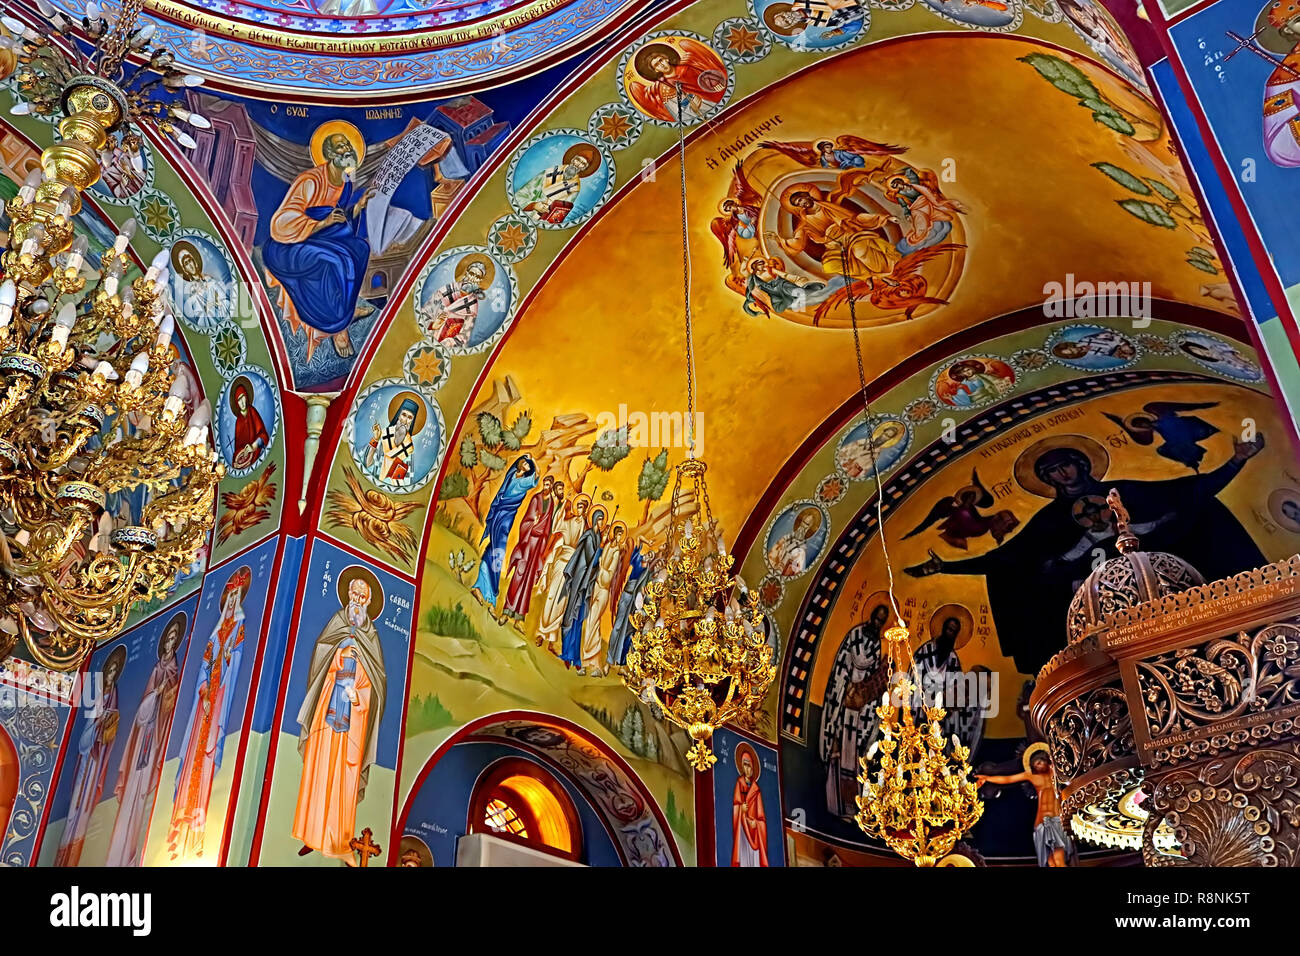 KFAR CANA, ISRAEL - SEPTEMBER 21, 2017: Interior of greek orthodox church of St. George, Kfar Cana (Kafr Kanna), Israel Stock Photo